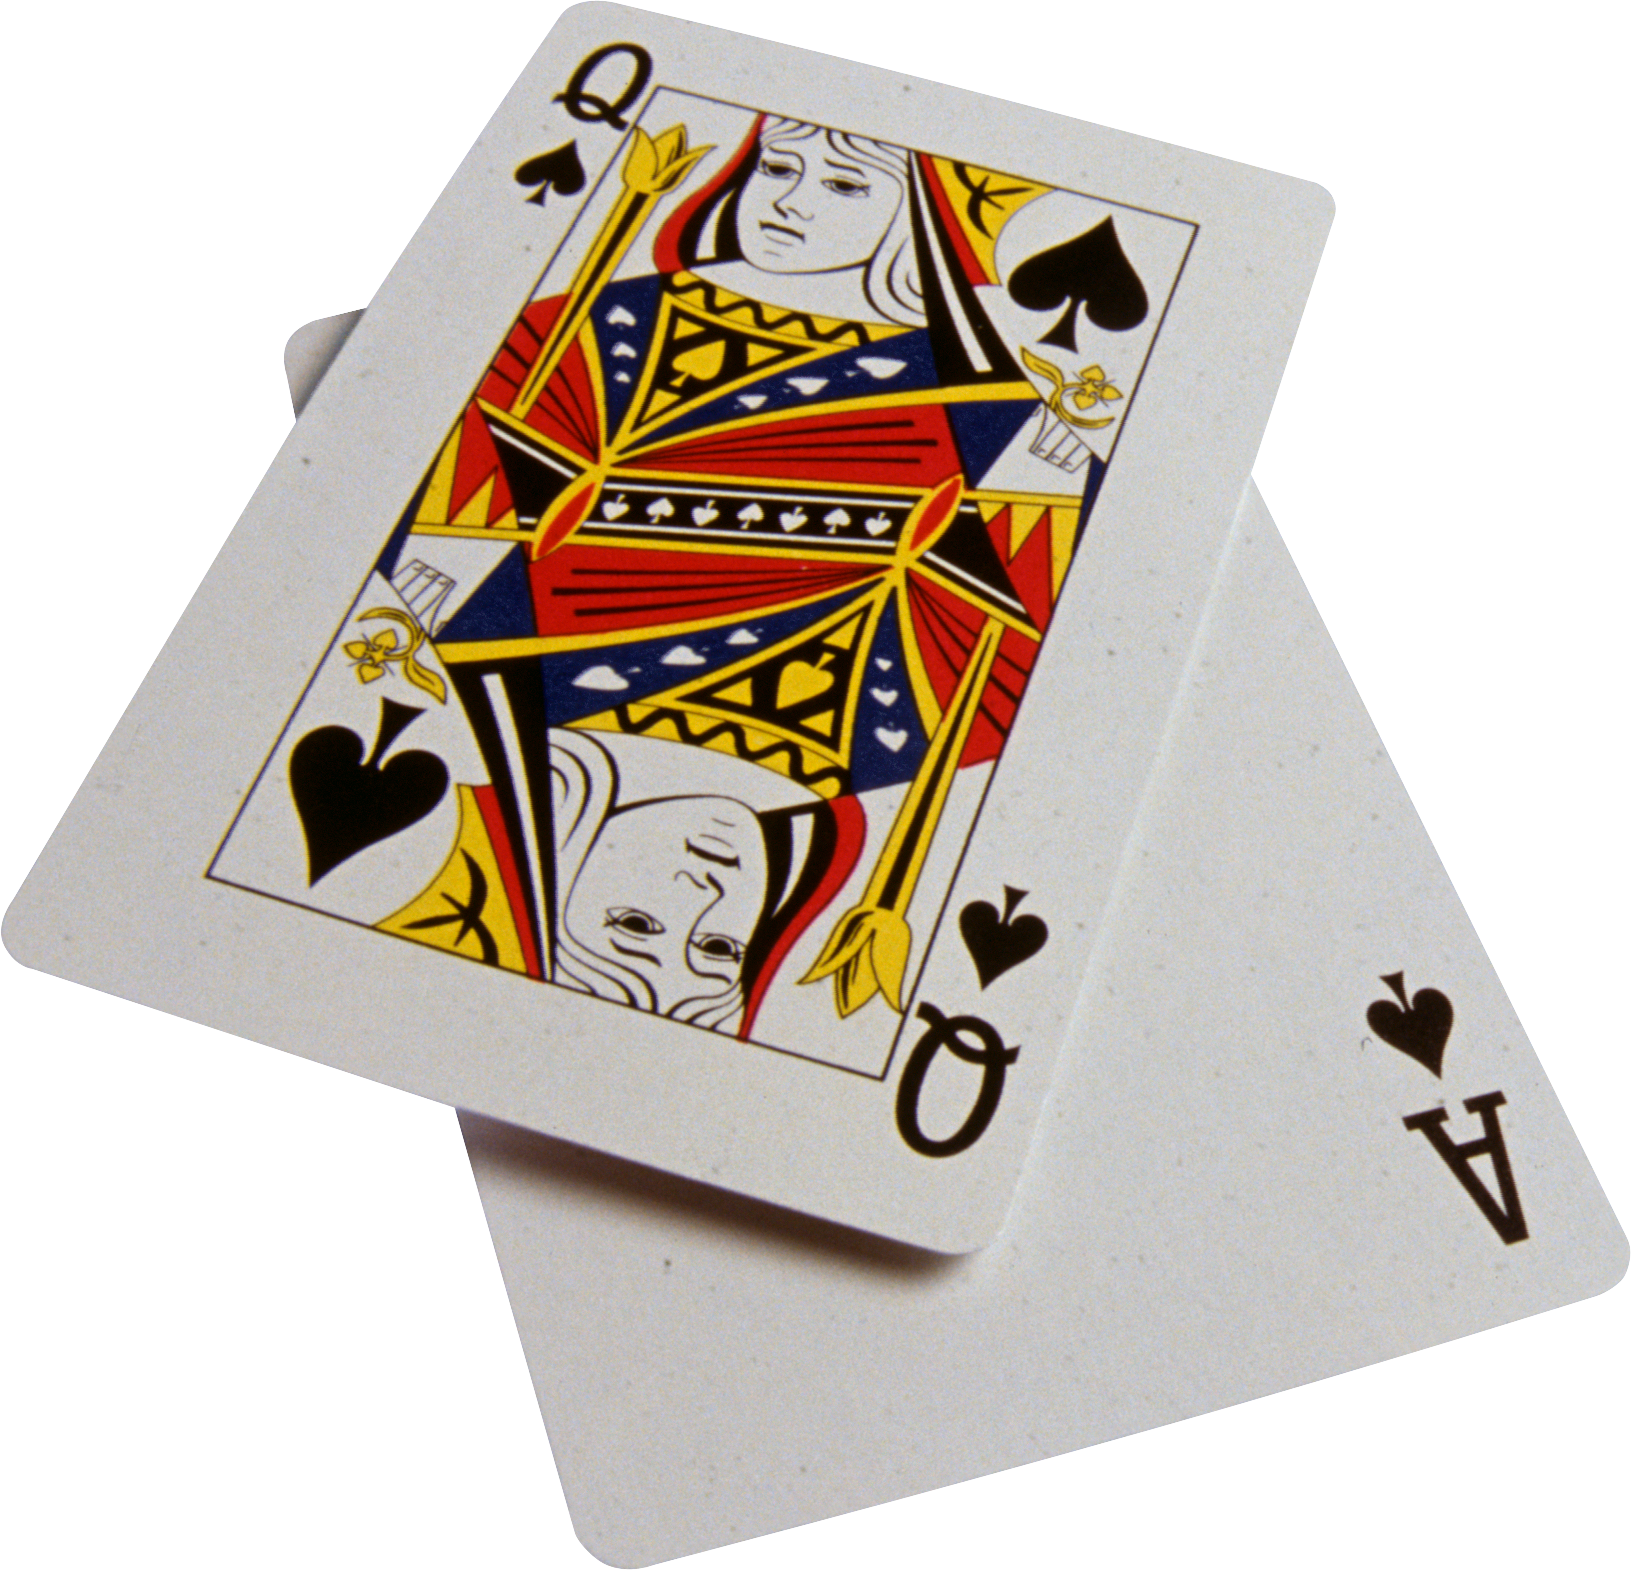 Ace card with money clipart graphic stock Playing cards PNG graphic stock